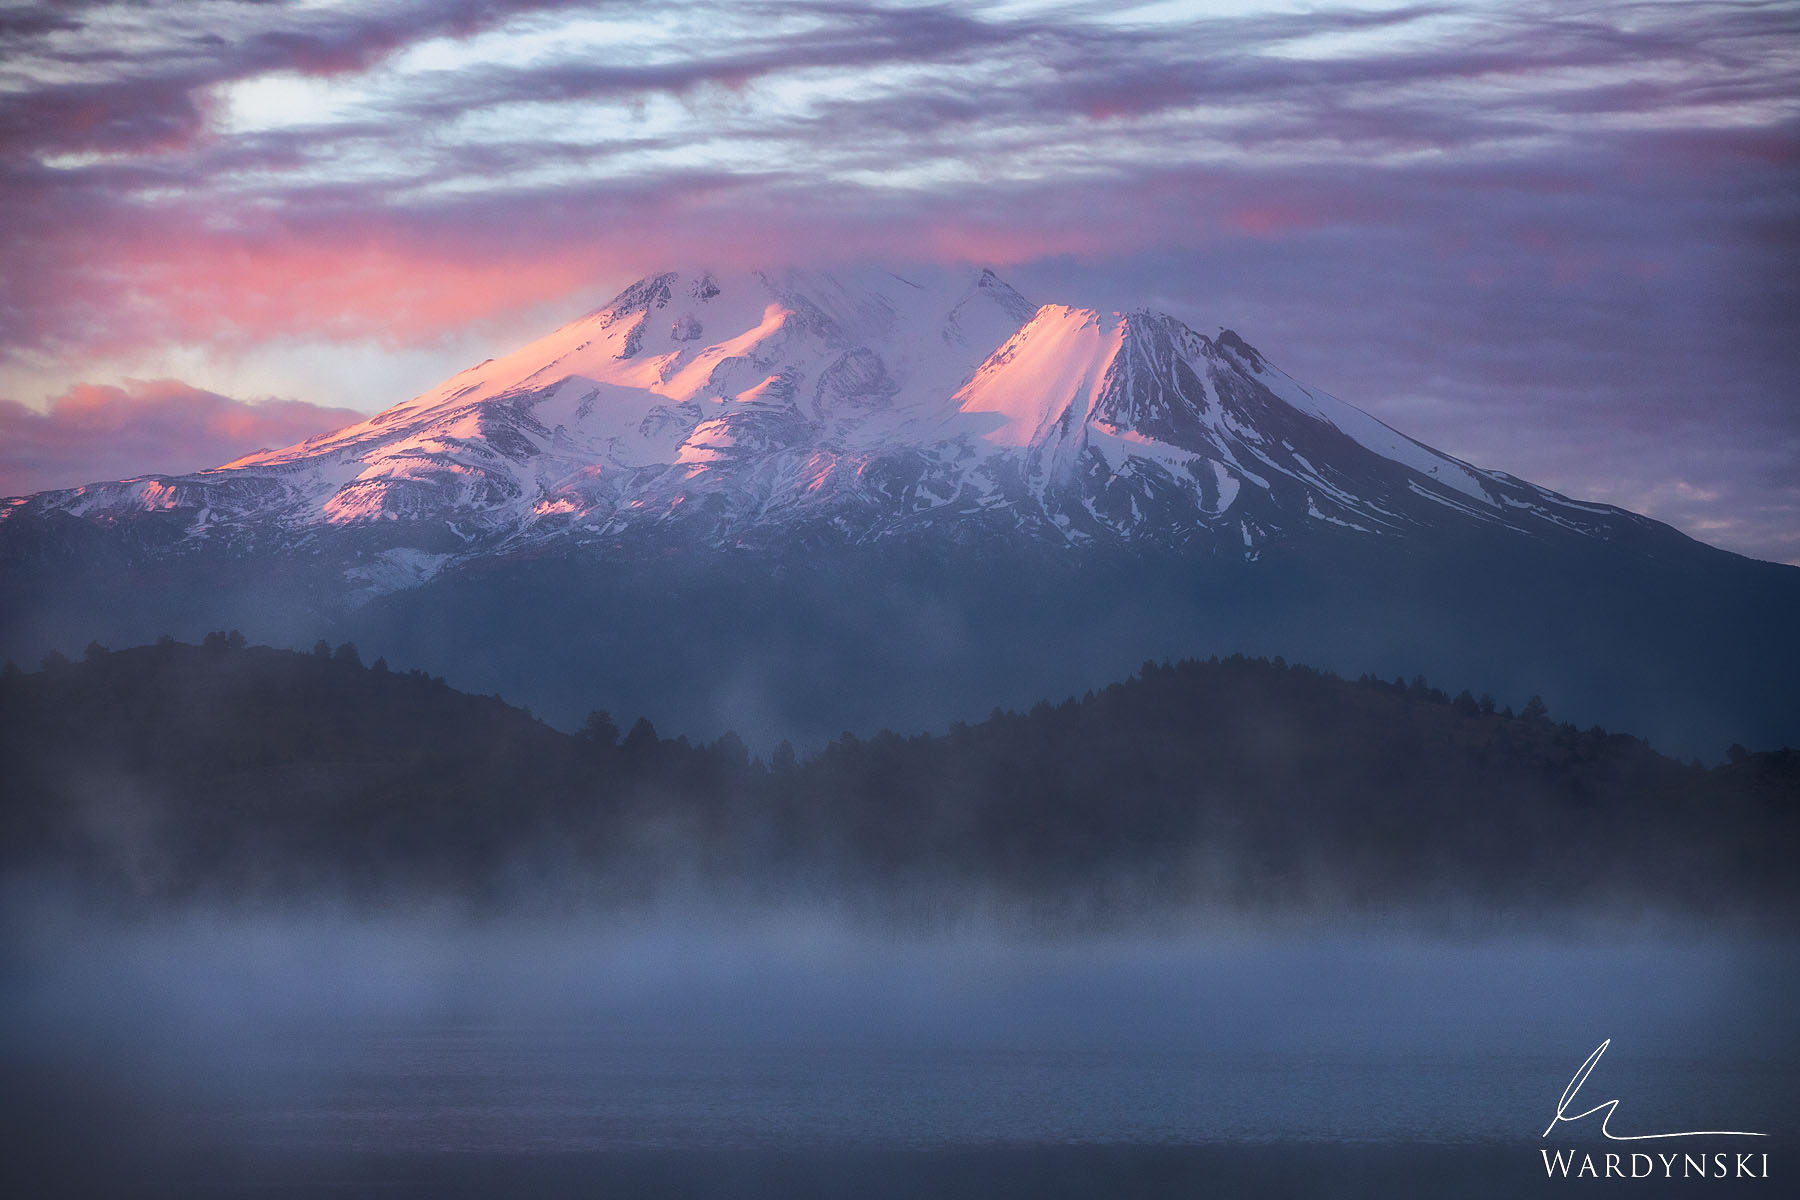 Fine Art Print | Limited Edition of 25  Pink light strikes Mount Shasta at sunrise as mist rises from a nearby lake. This massive...